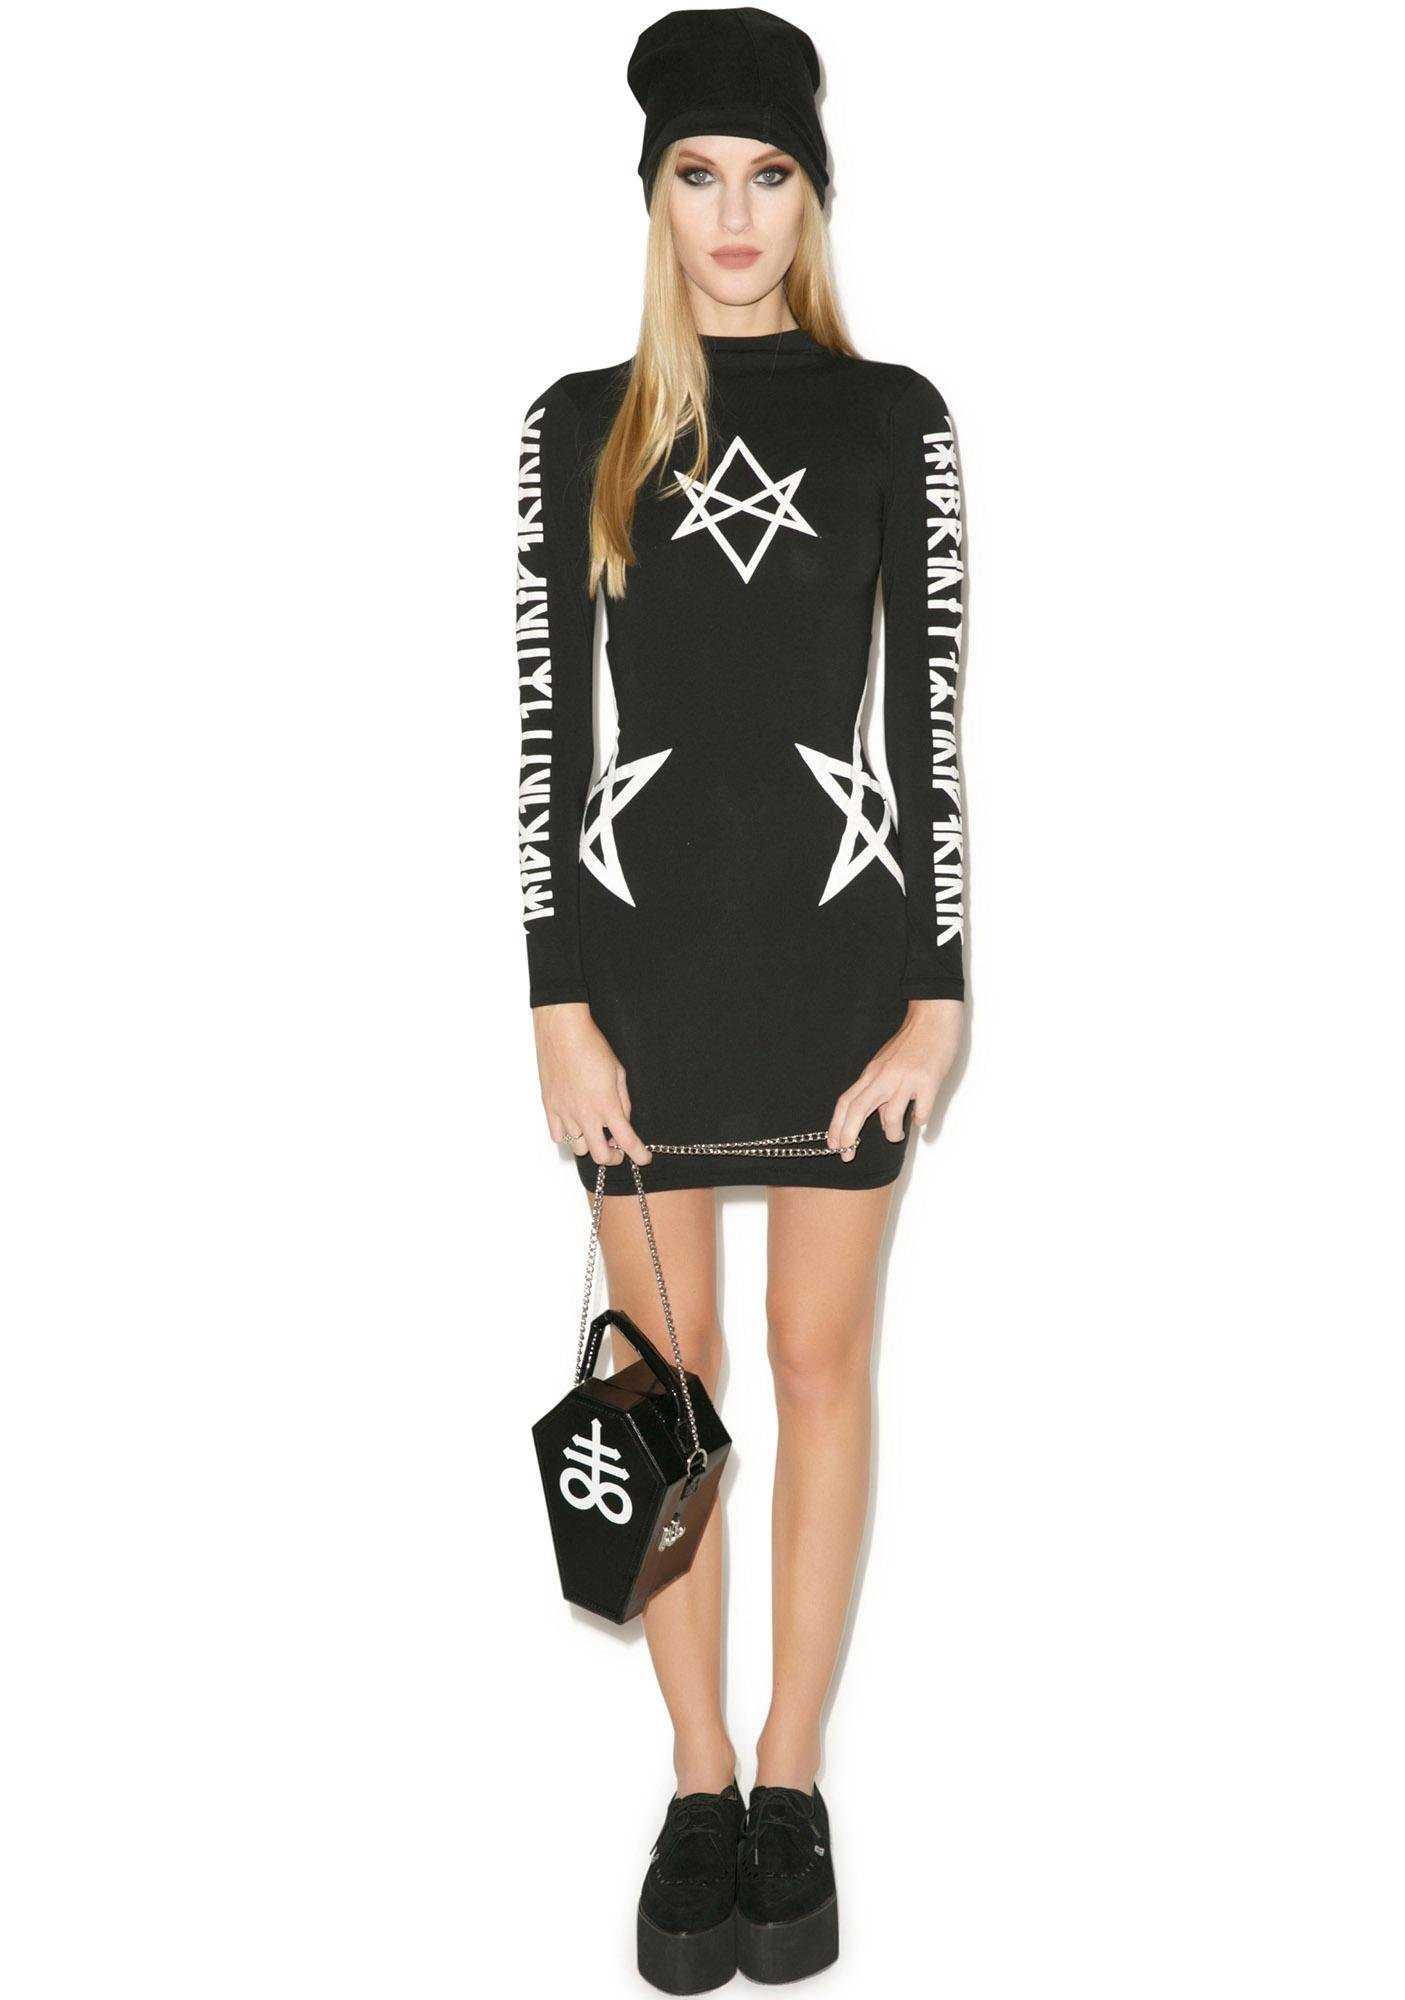 Long Clothing Hexagram Dress